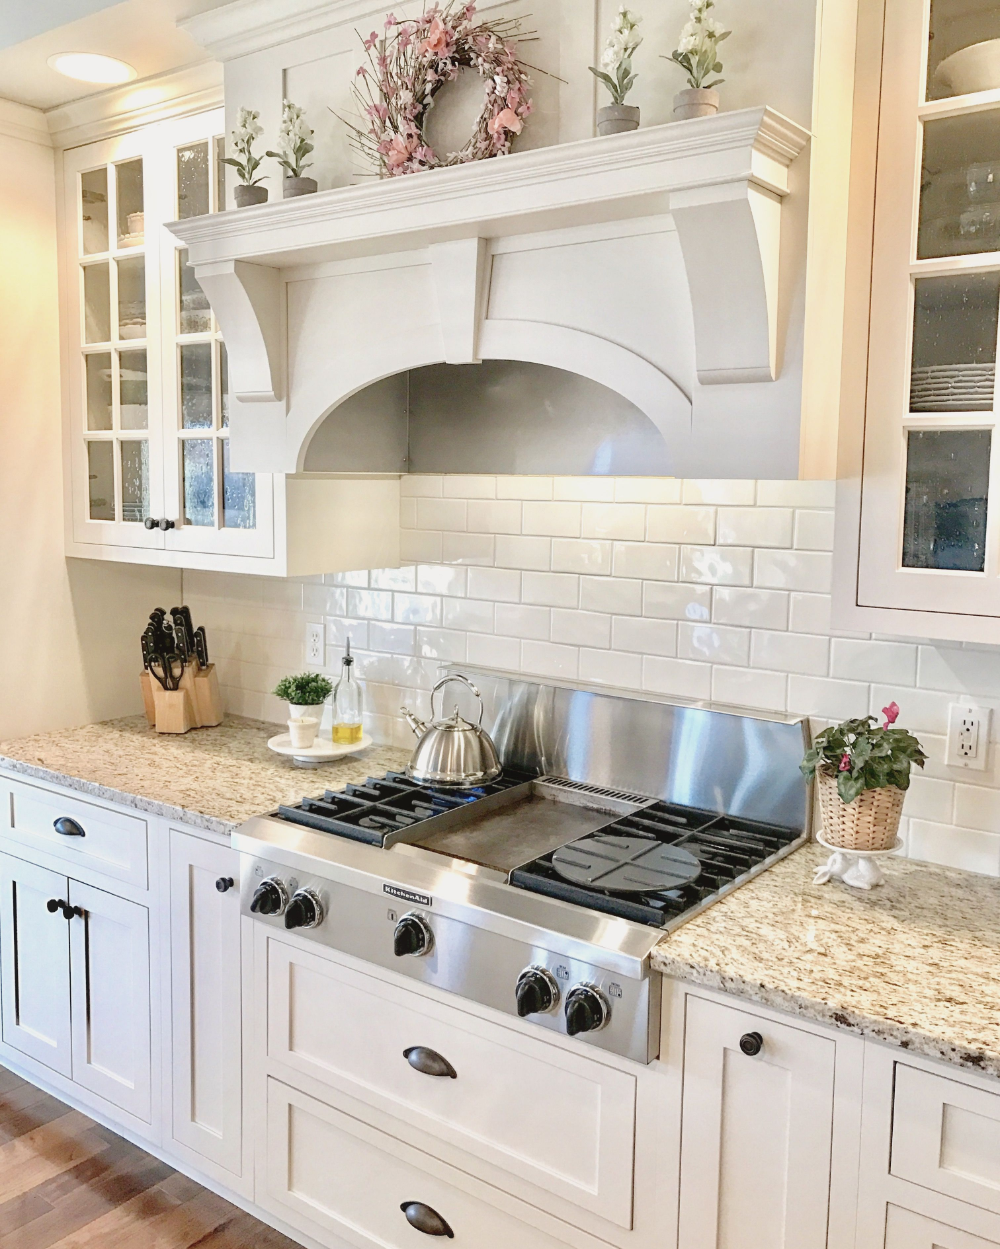 Antique White Kitchen Cabinets My Farmhouse In 2019 Antique White Kitchen Kitchen Cabinet Design Off White Kitchen Cabinets